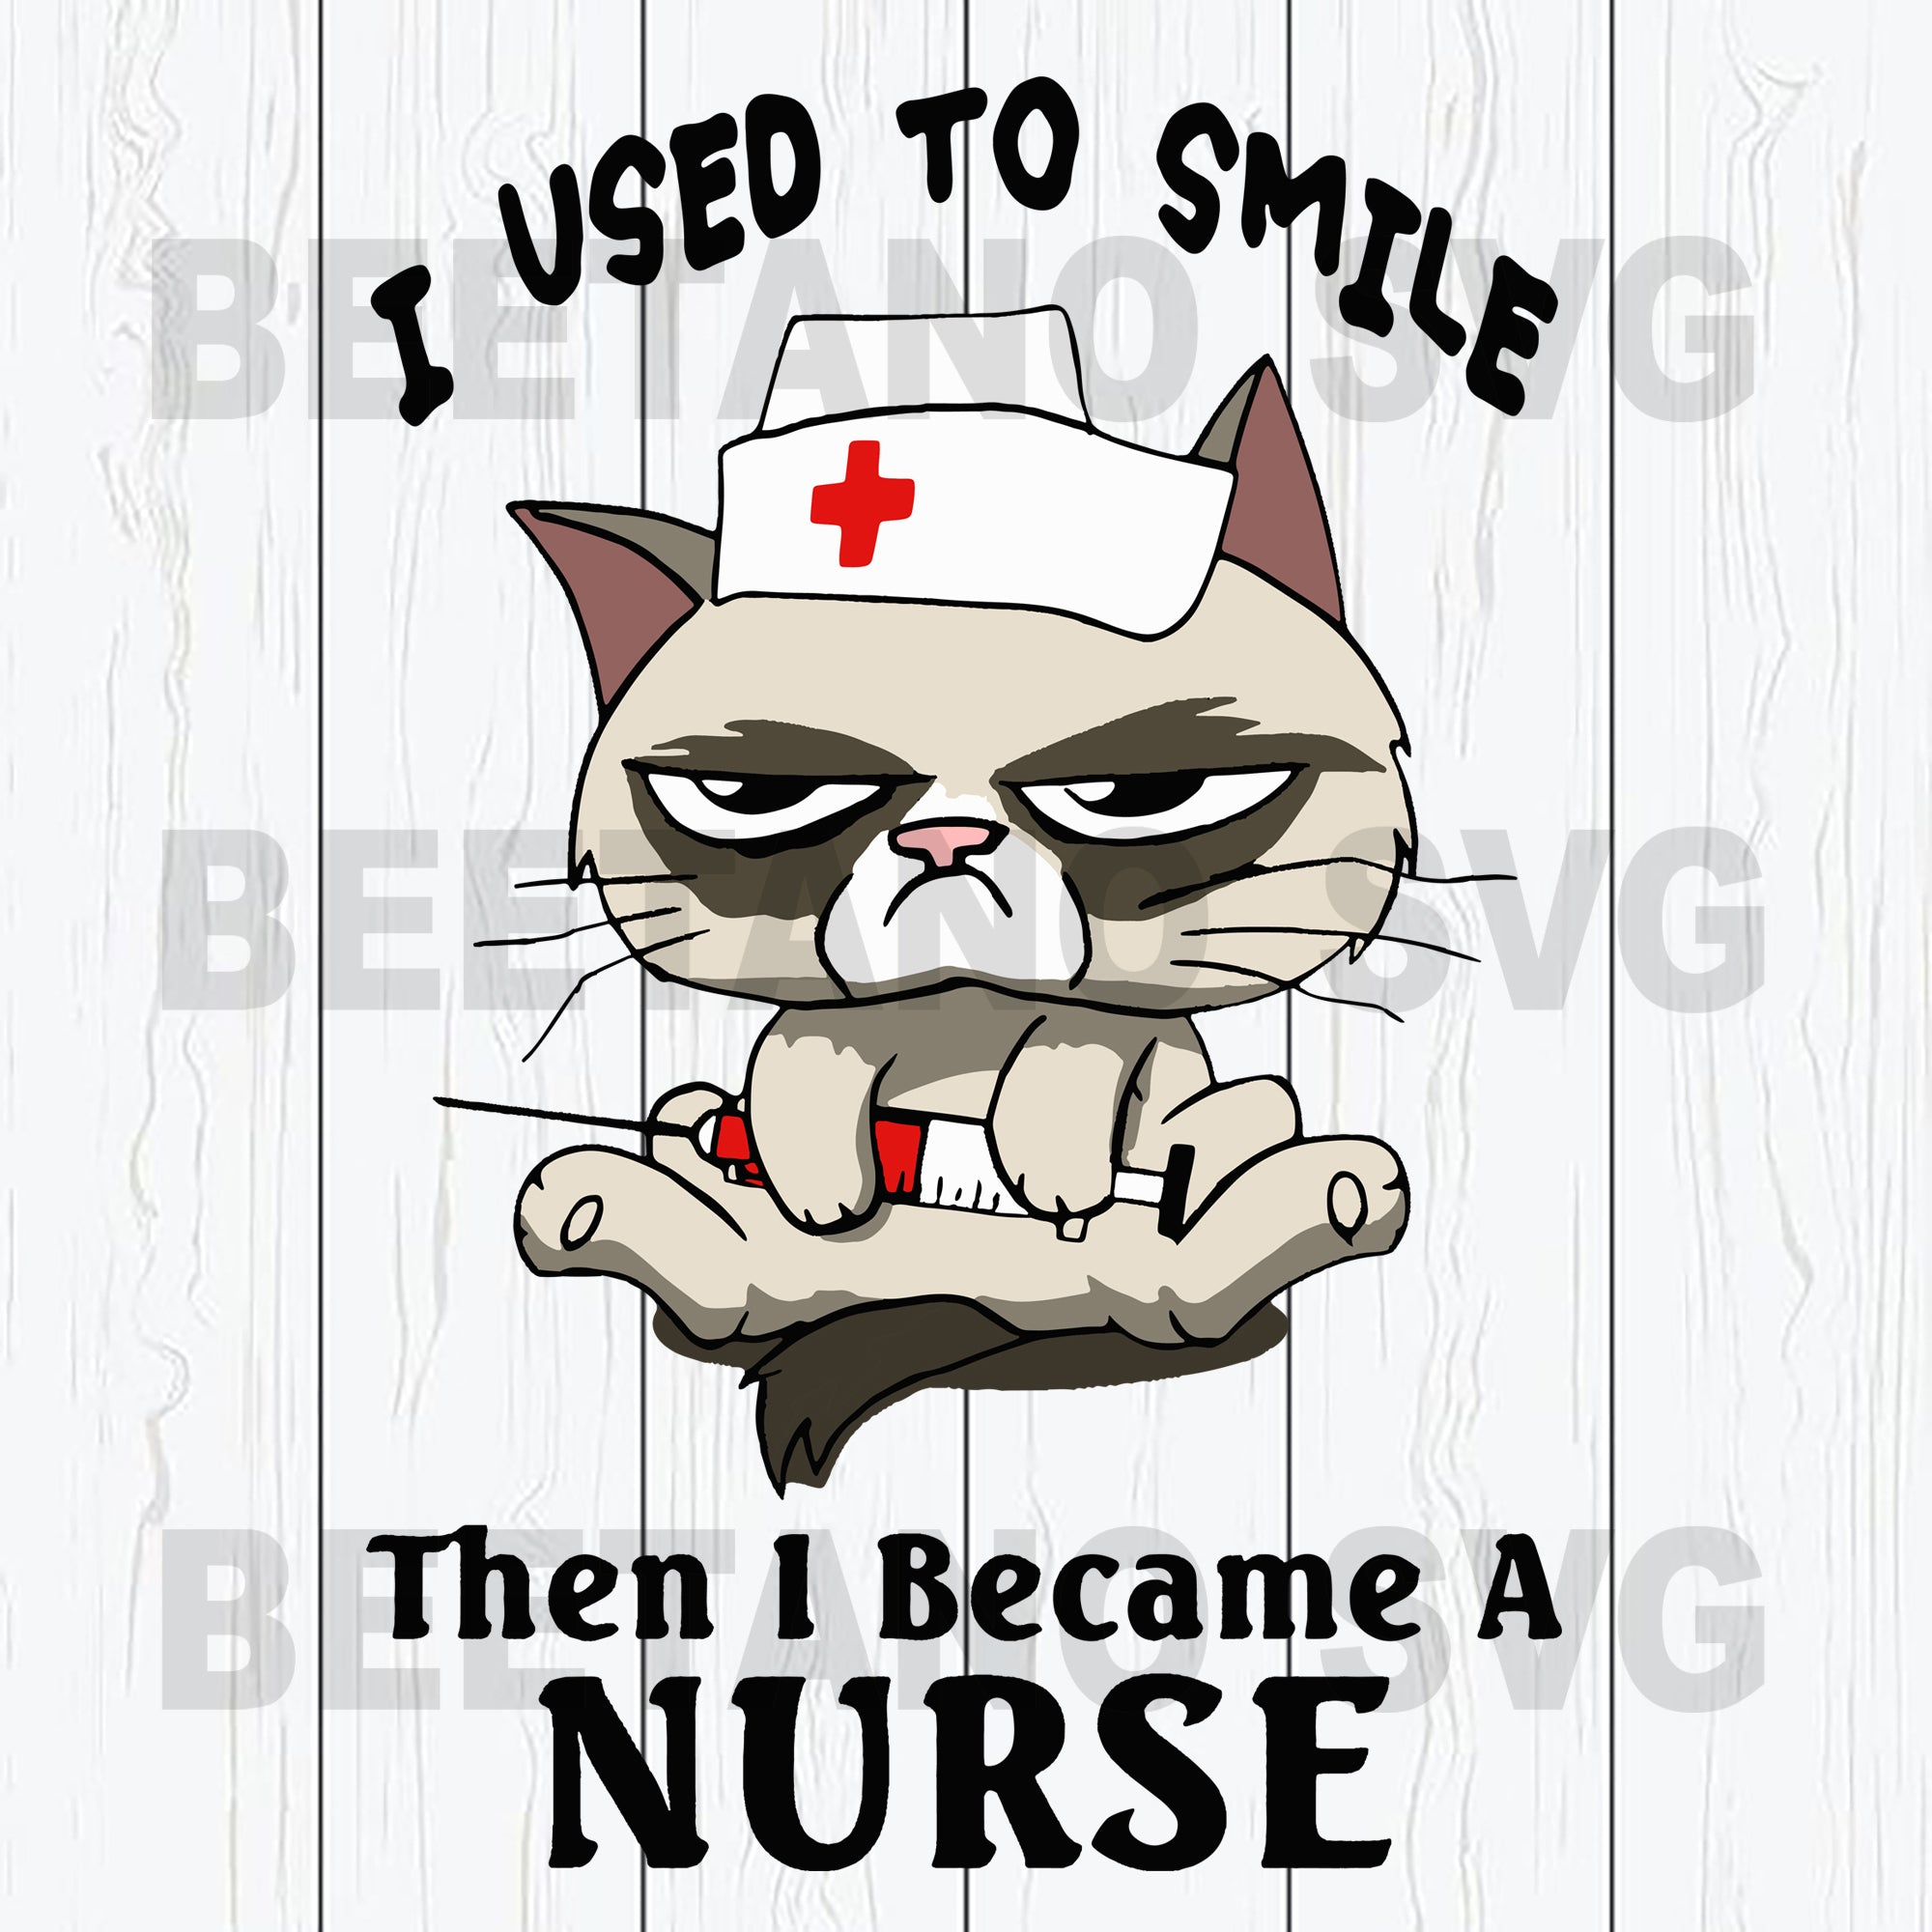 I Used To Smile Then I Became A Nurse